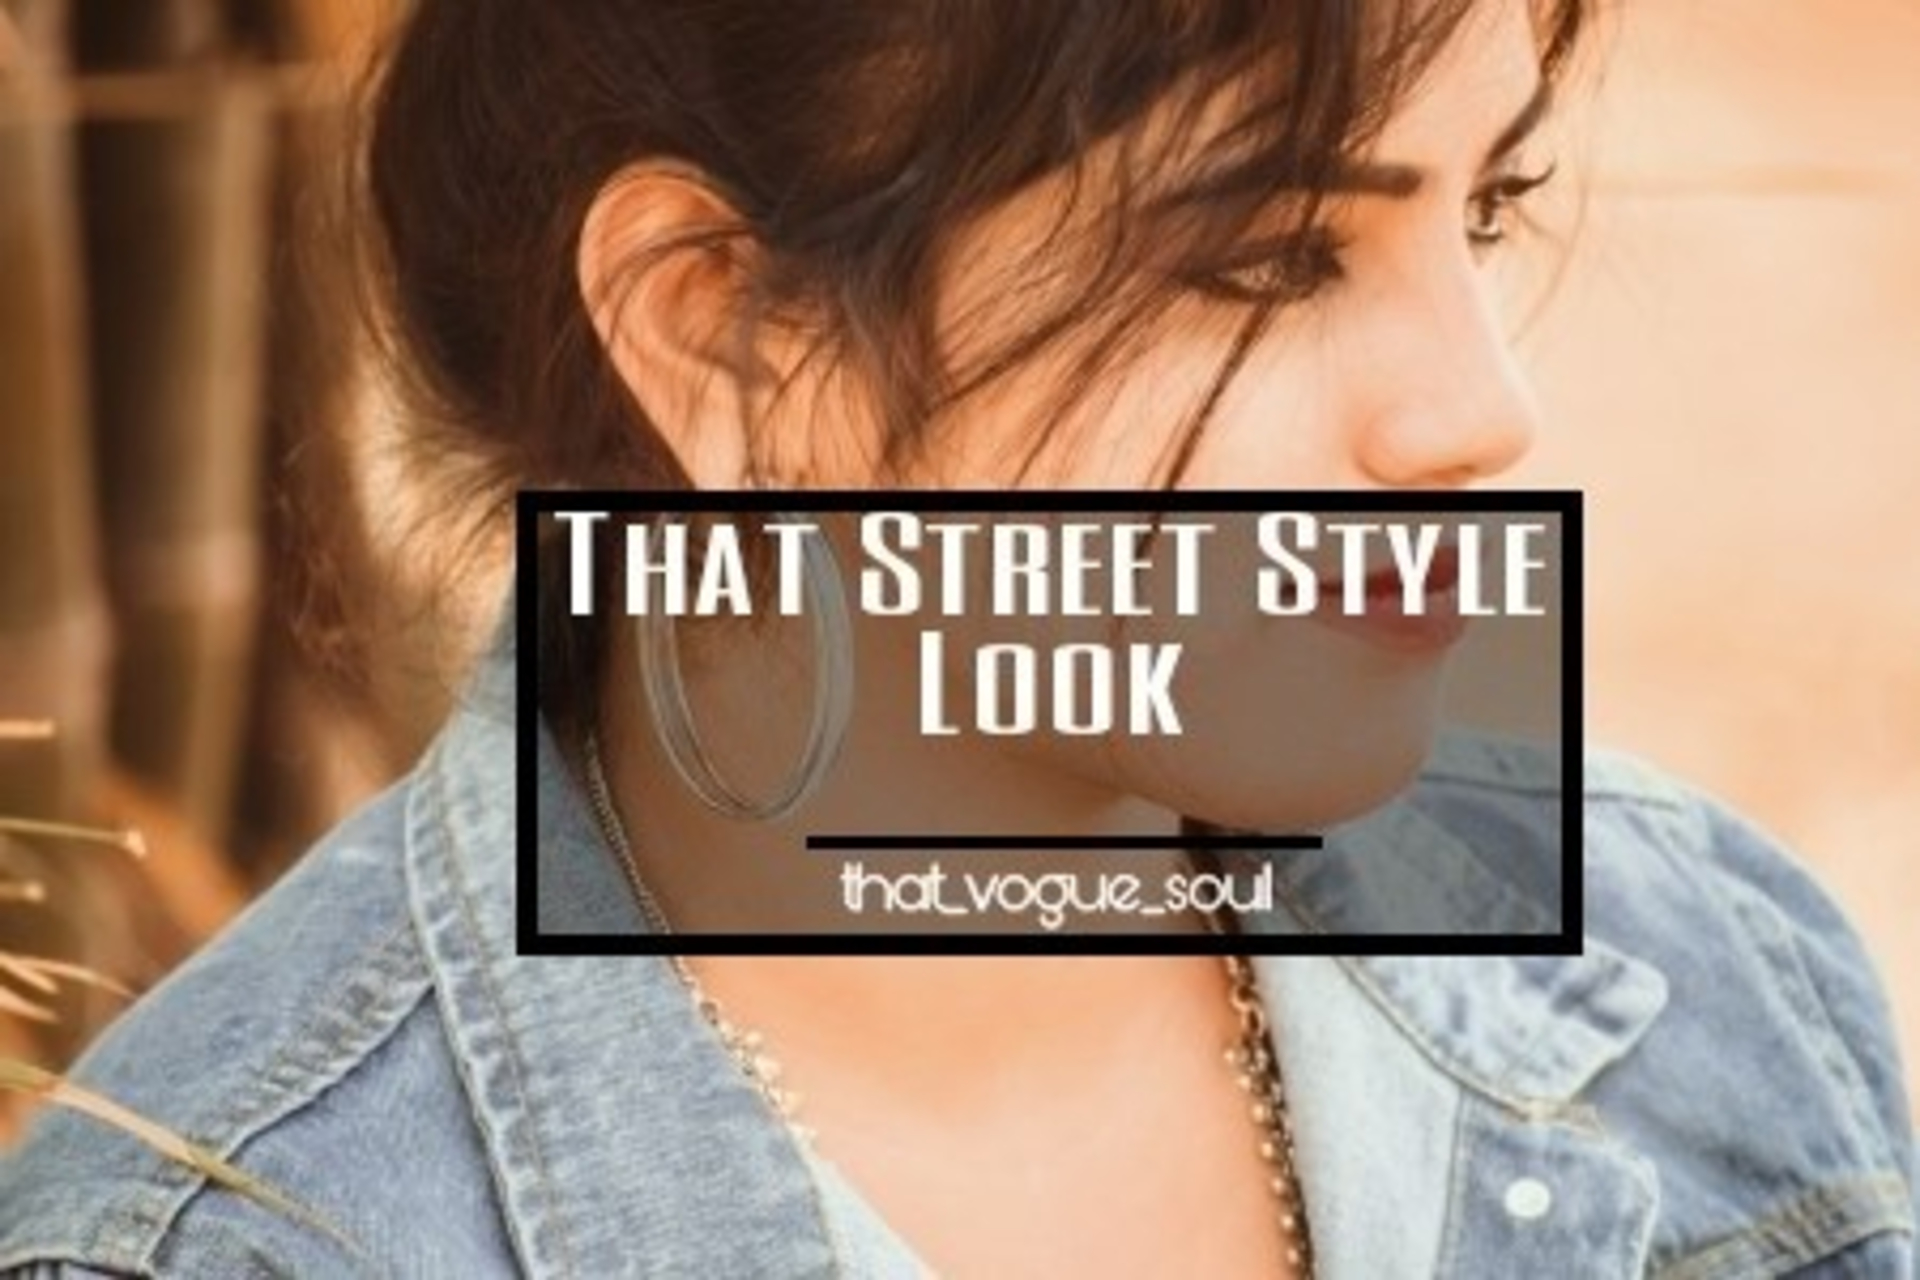 THAT STREET STYLE LOOK image